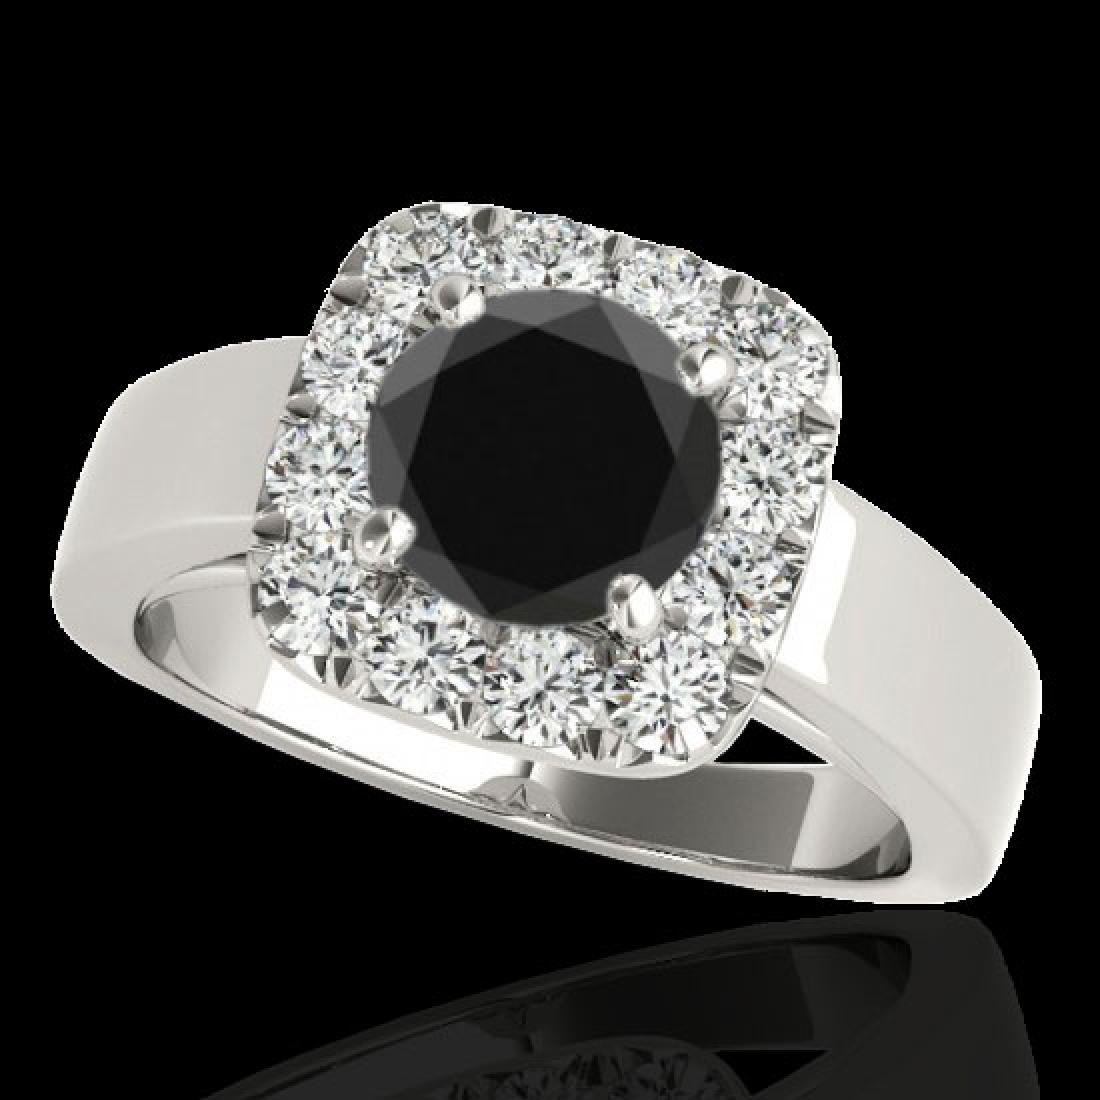 1.55 CTW Certified VS Black Diamond Solitaire Halo Ring